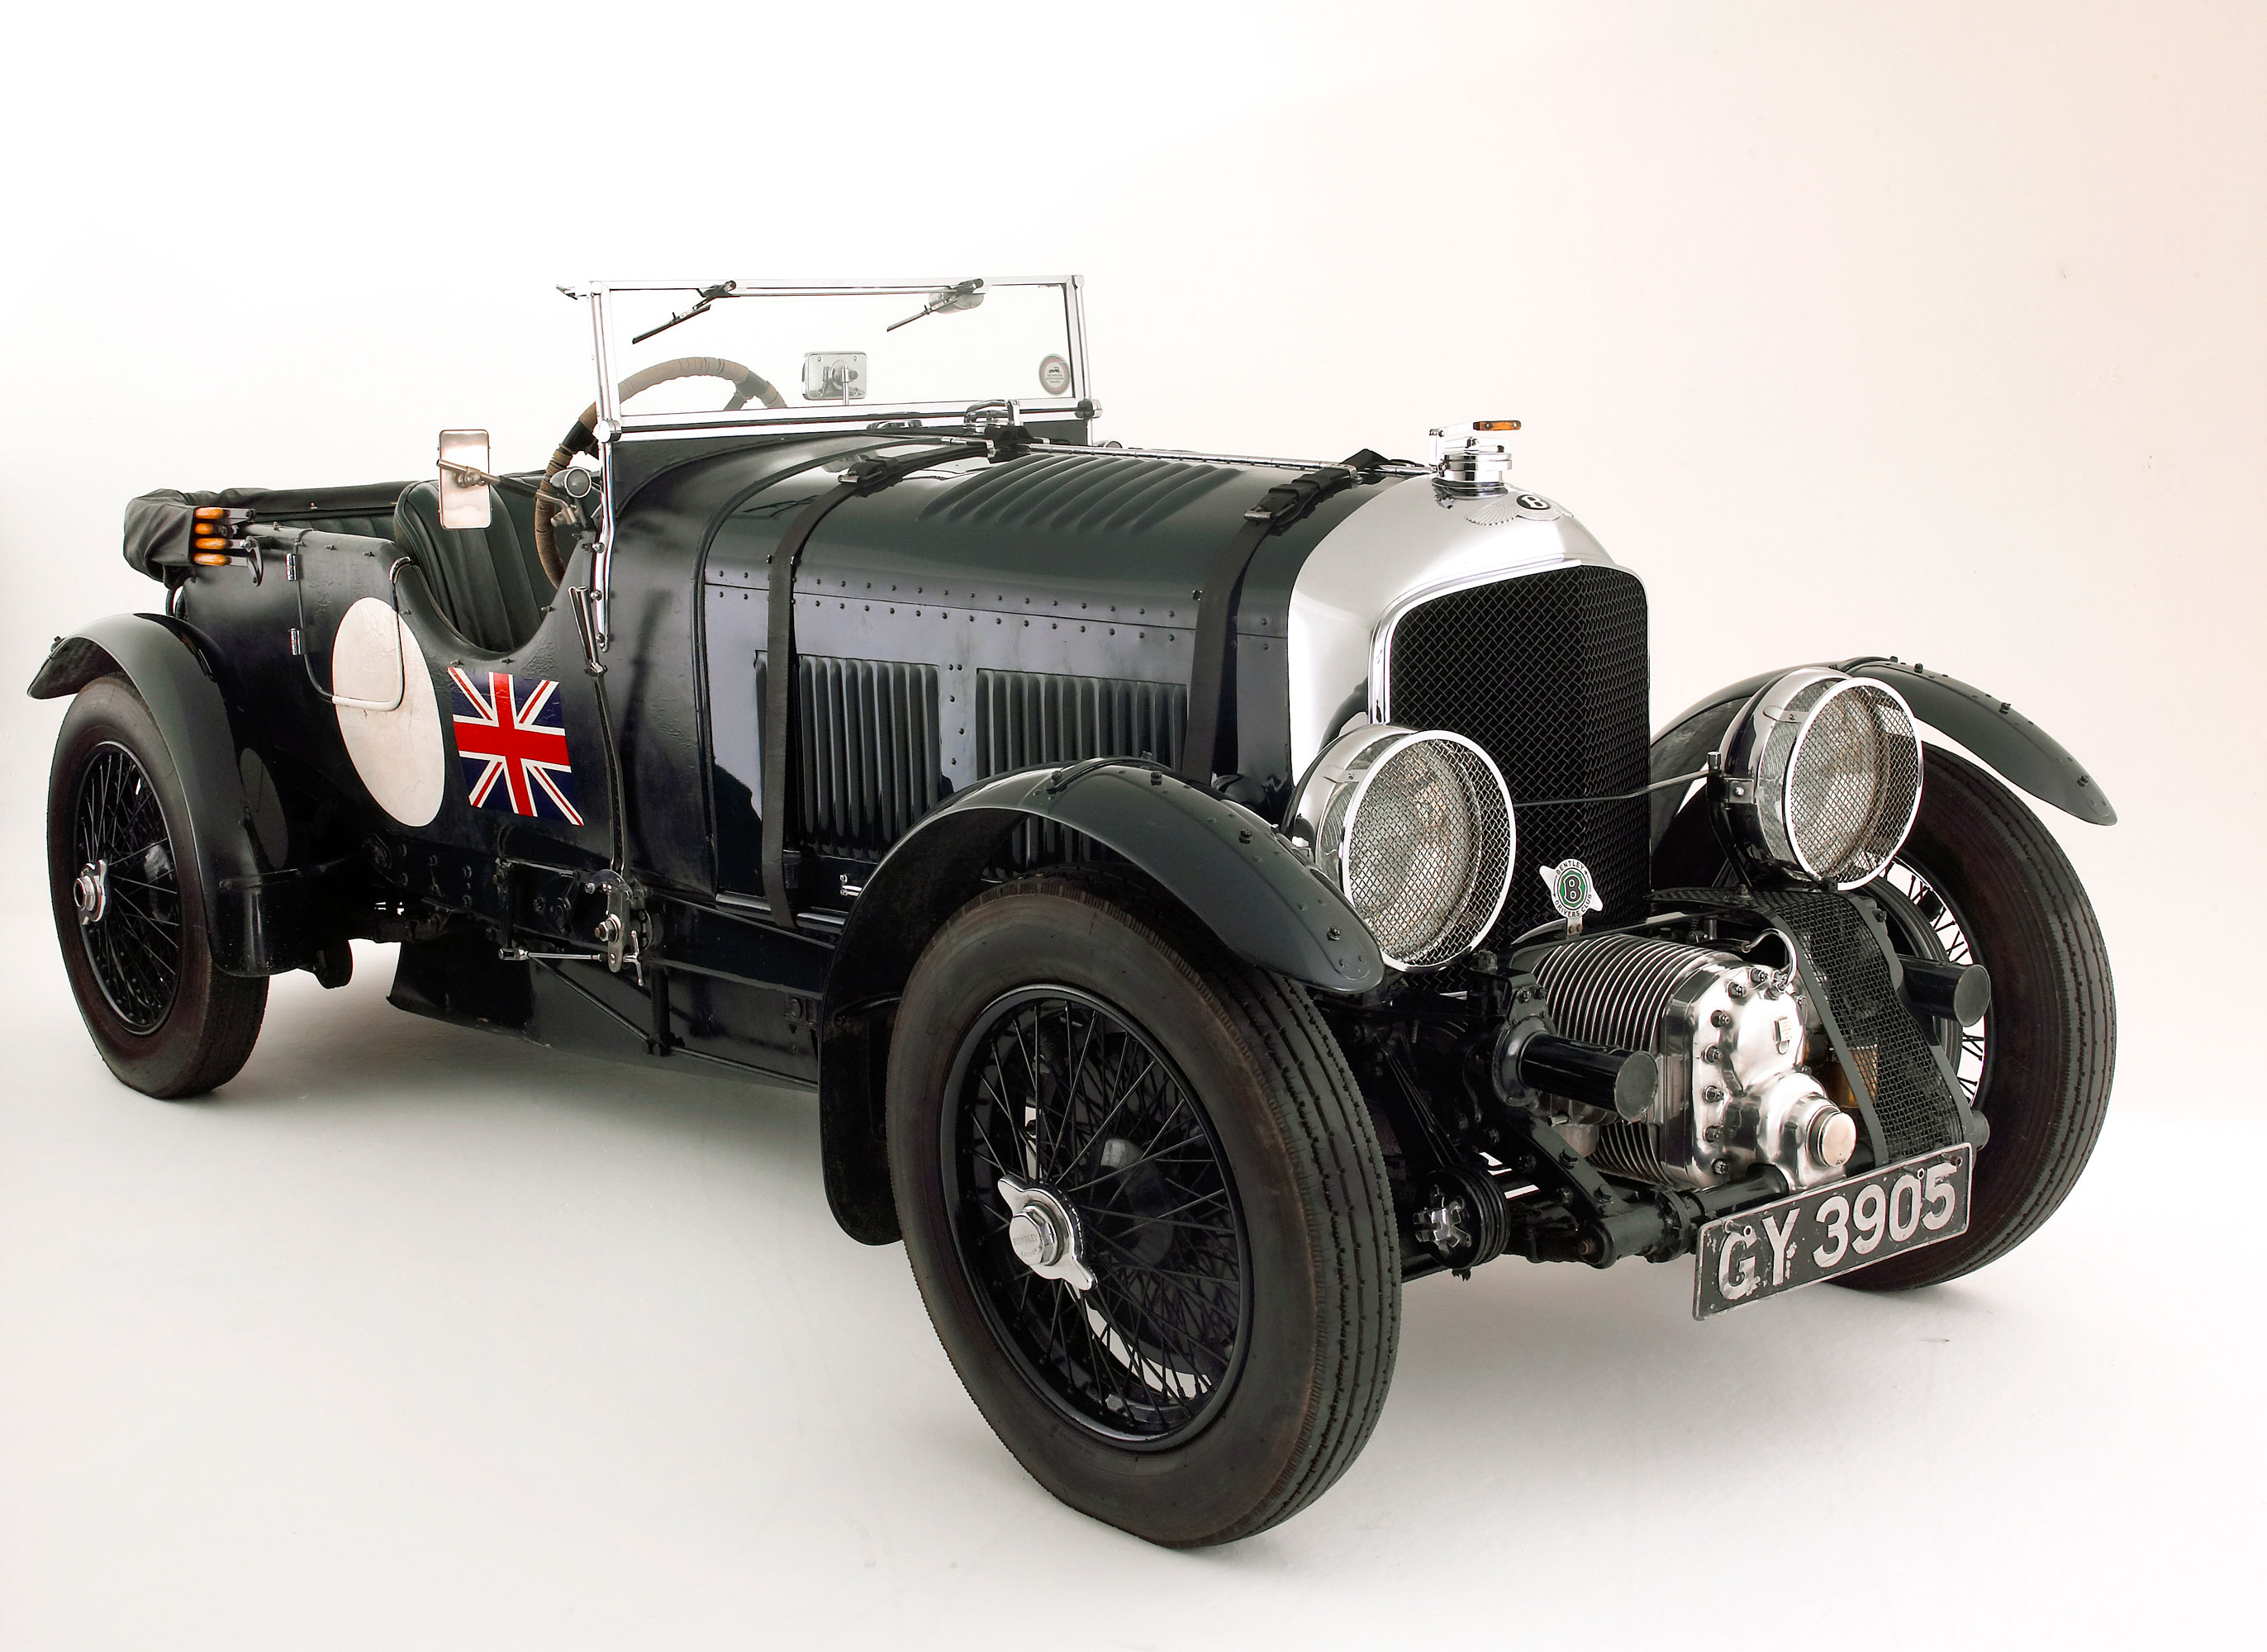 Bentley 4 5 Litre Supercharged - The National Motor Museum Trust